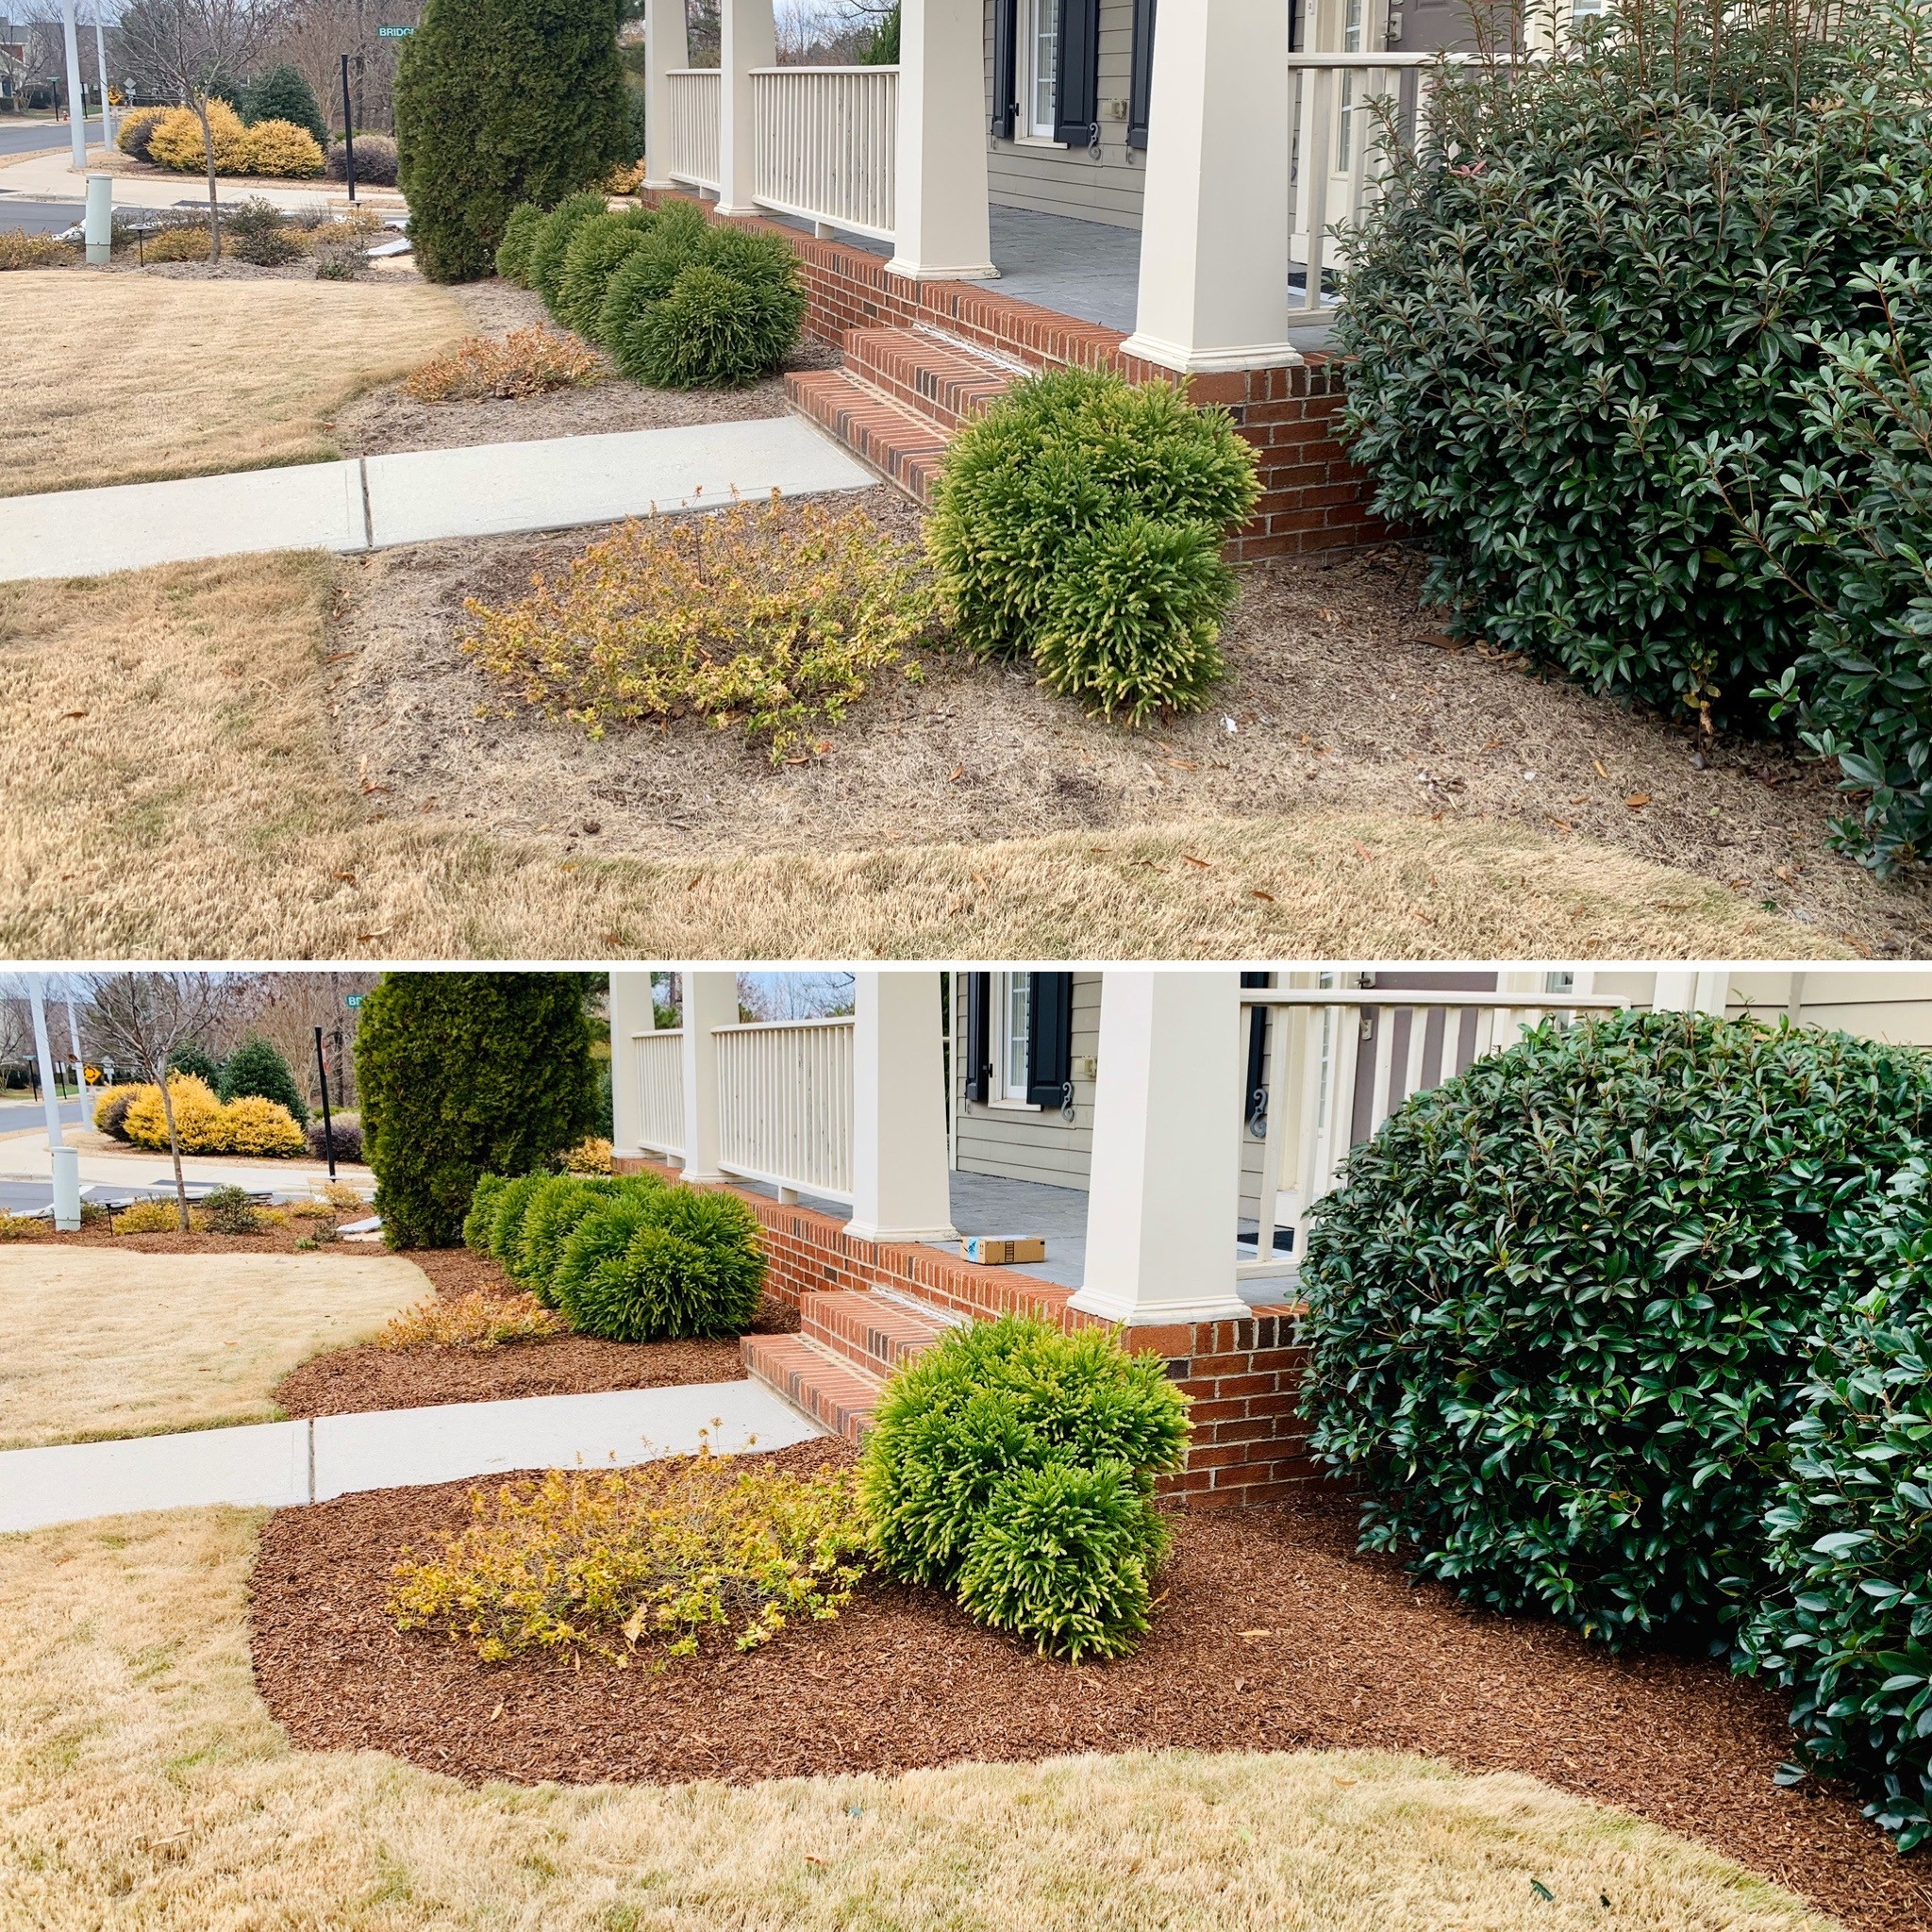 3 Ways to Enhance Your Landscape: Pruning, Edging and Mulch